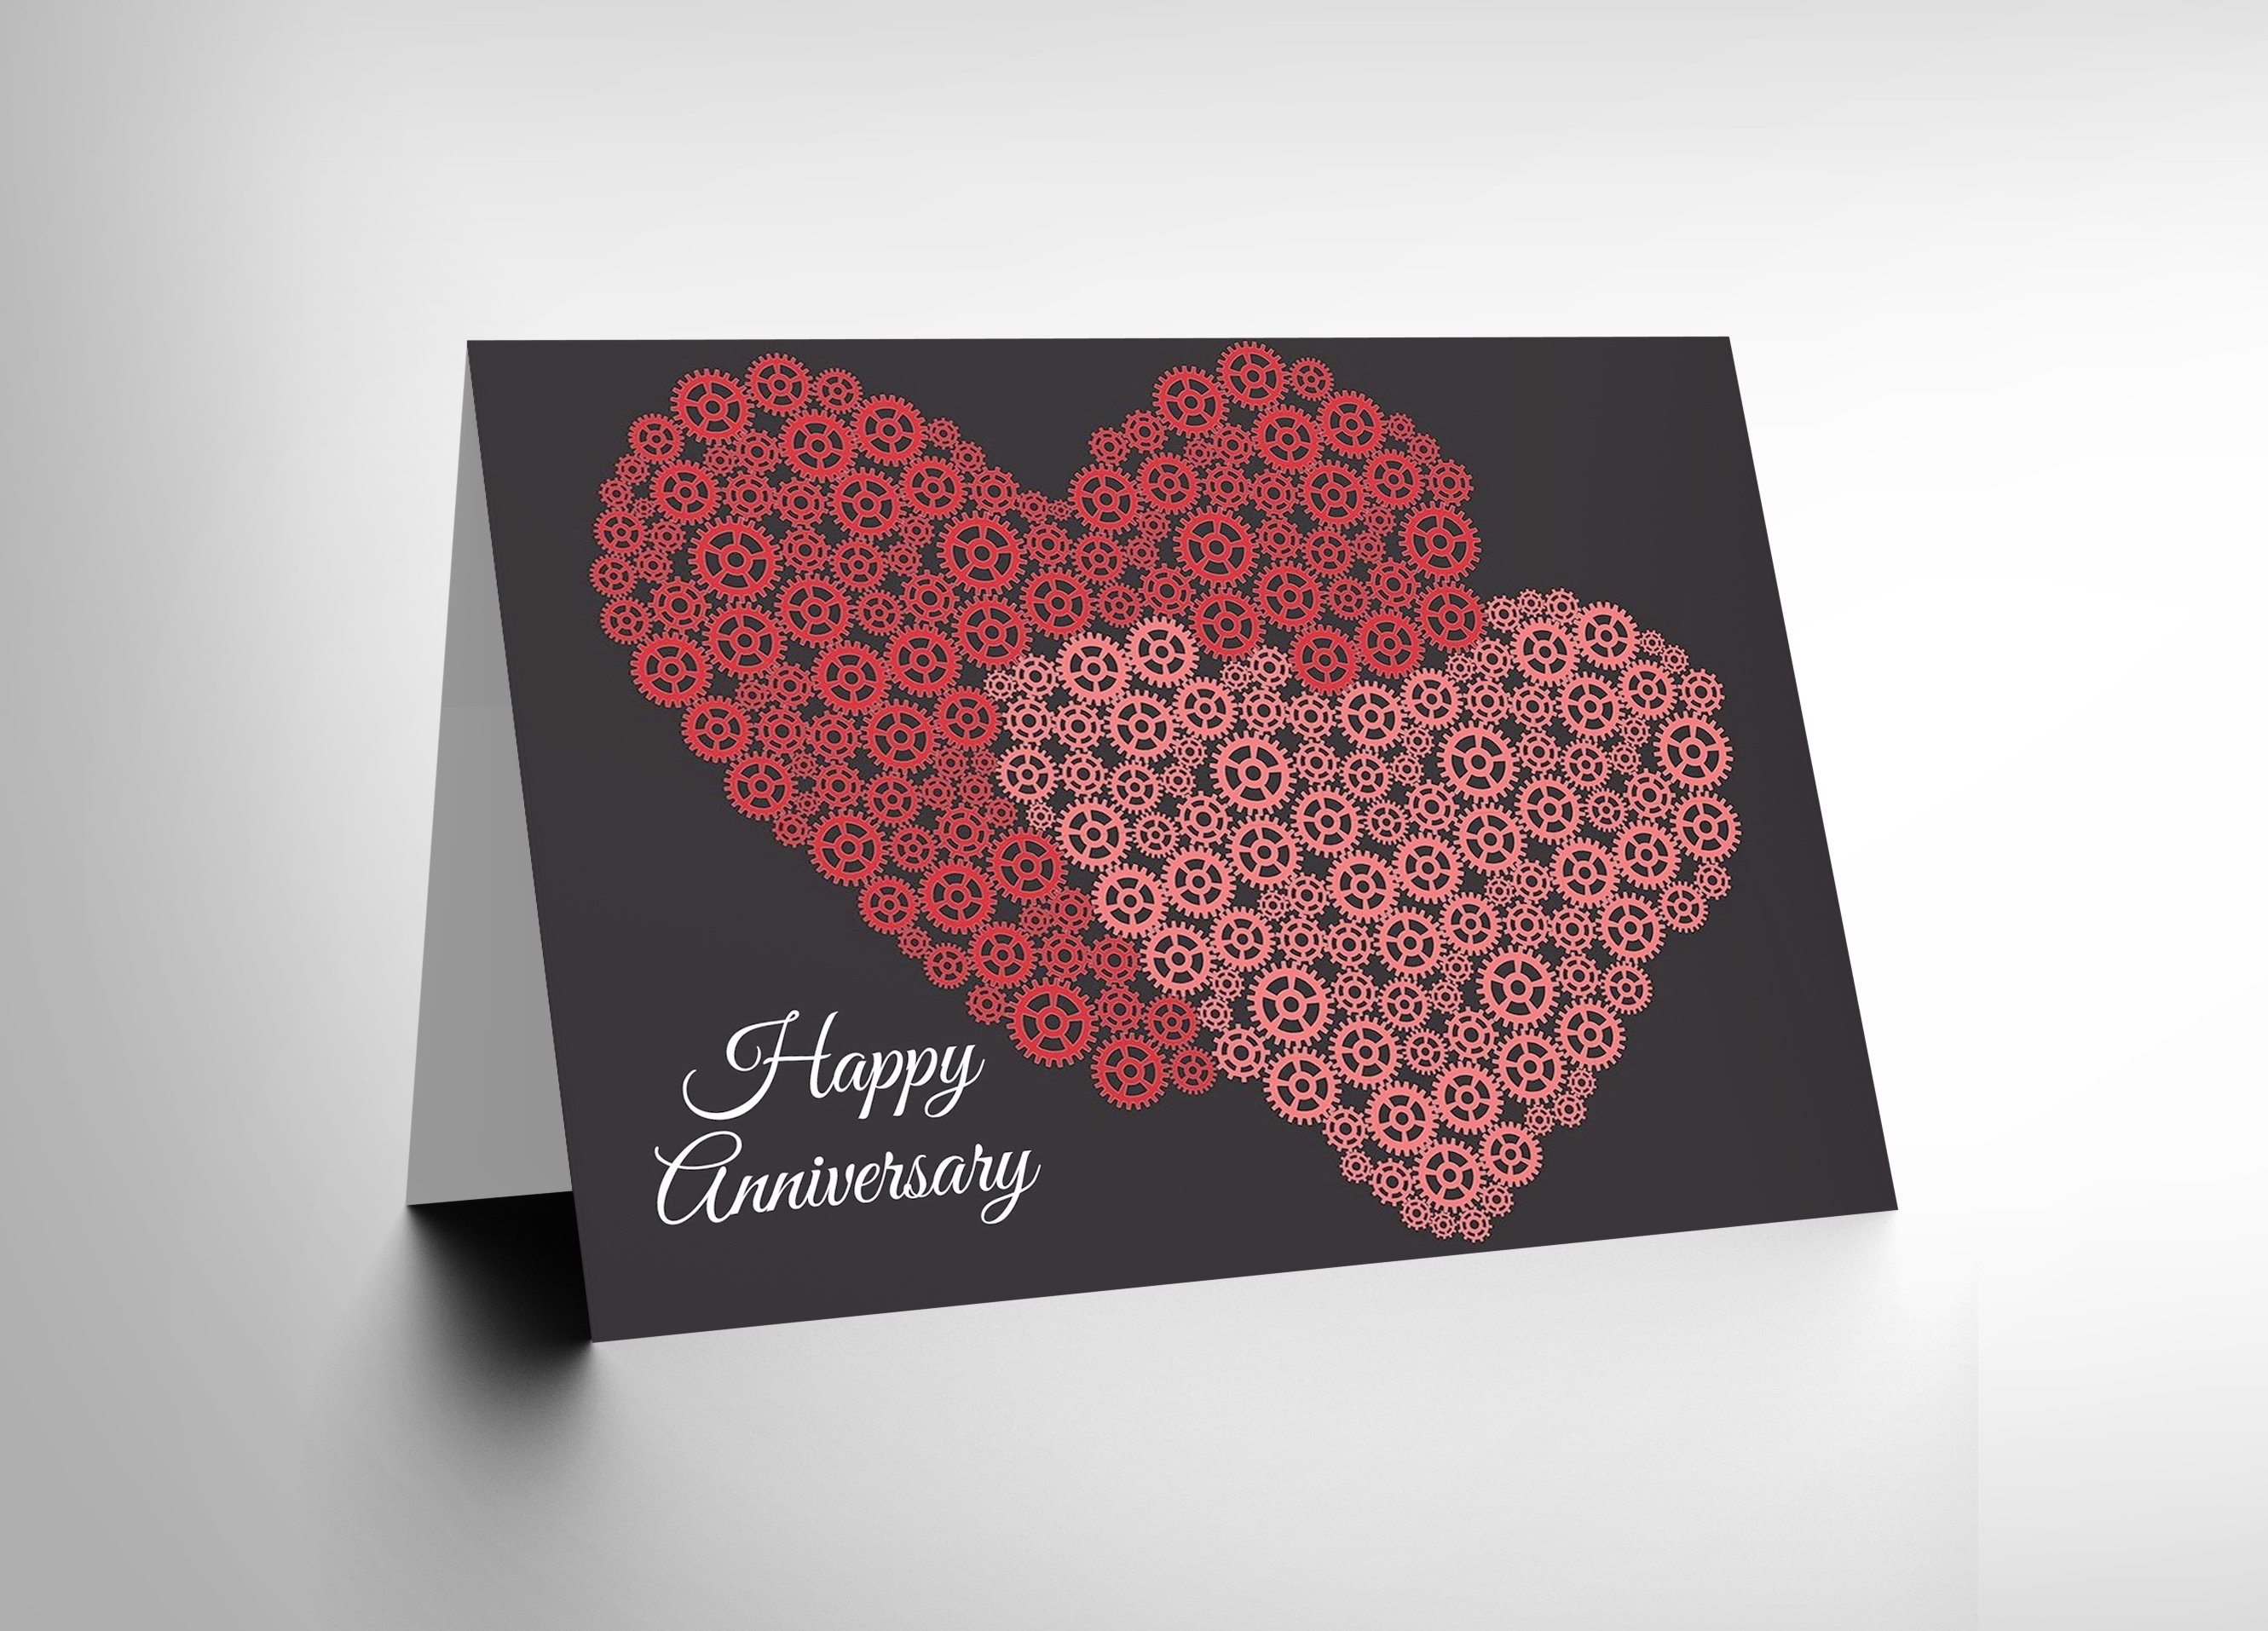 HAPPY ANNIVERSARY COGS GEARS HEARTS LOVE VALENTINES DAY